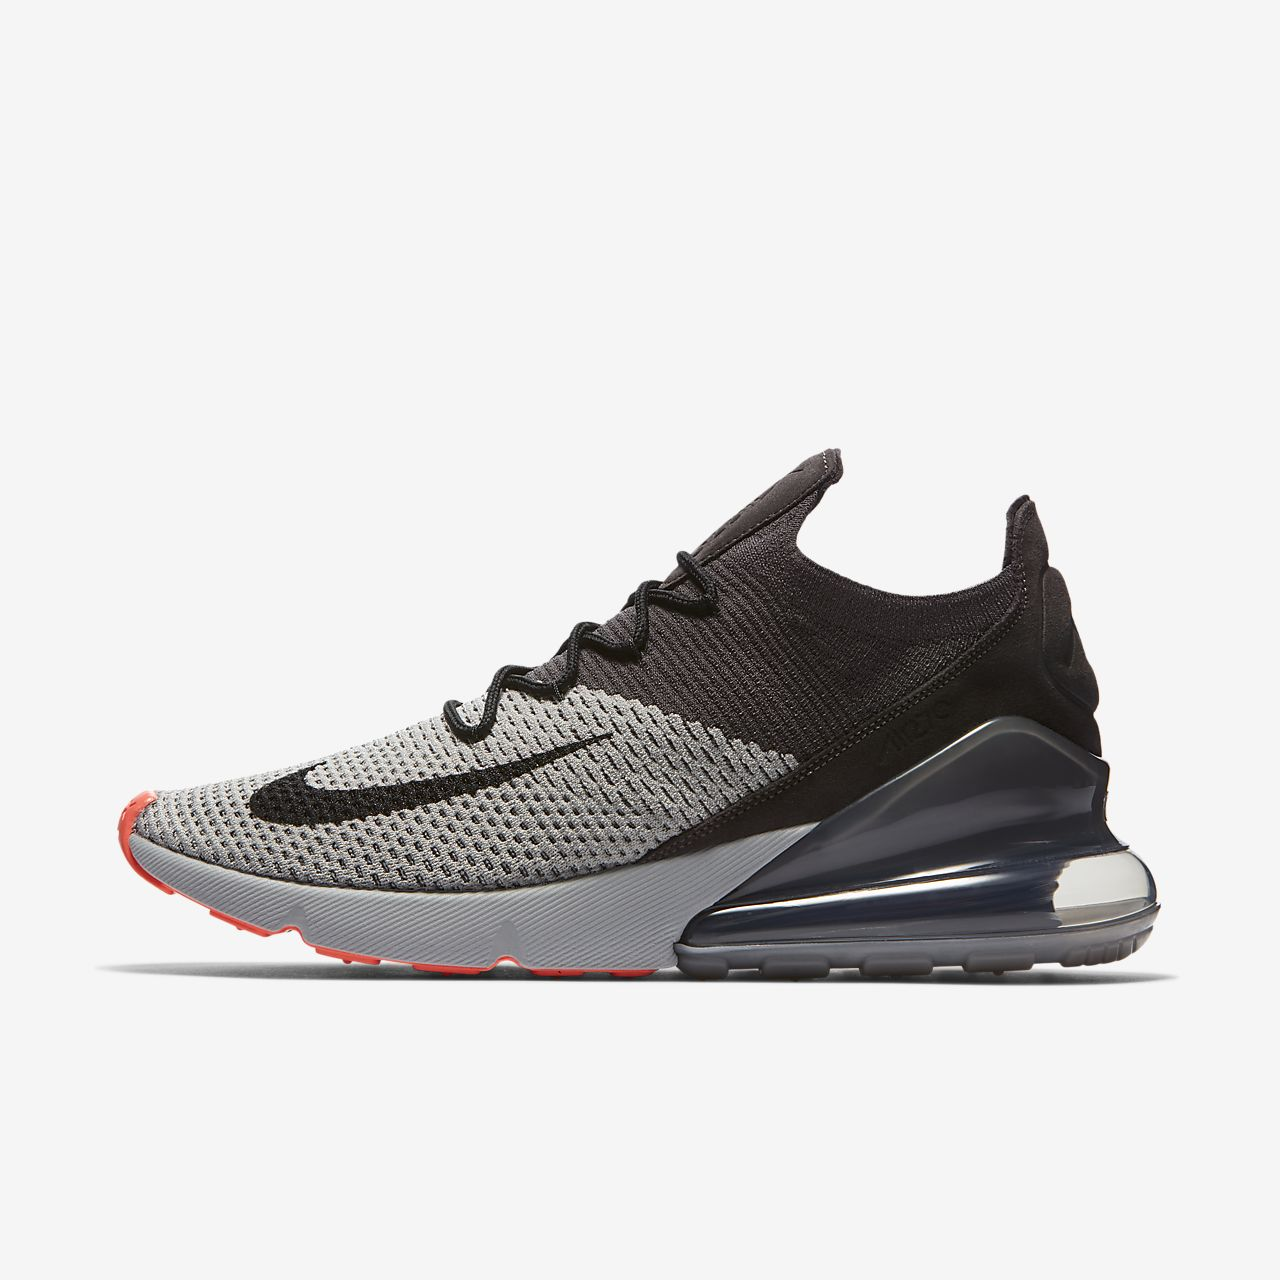 392c262ac13 Nike Air Max 270 Flyknit Men s Shoe. Nike.com VN